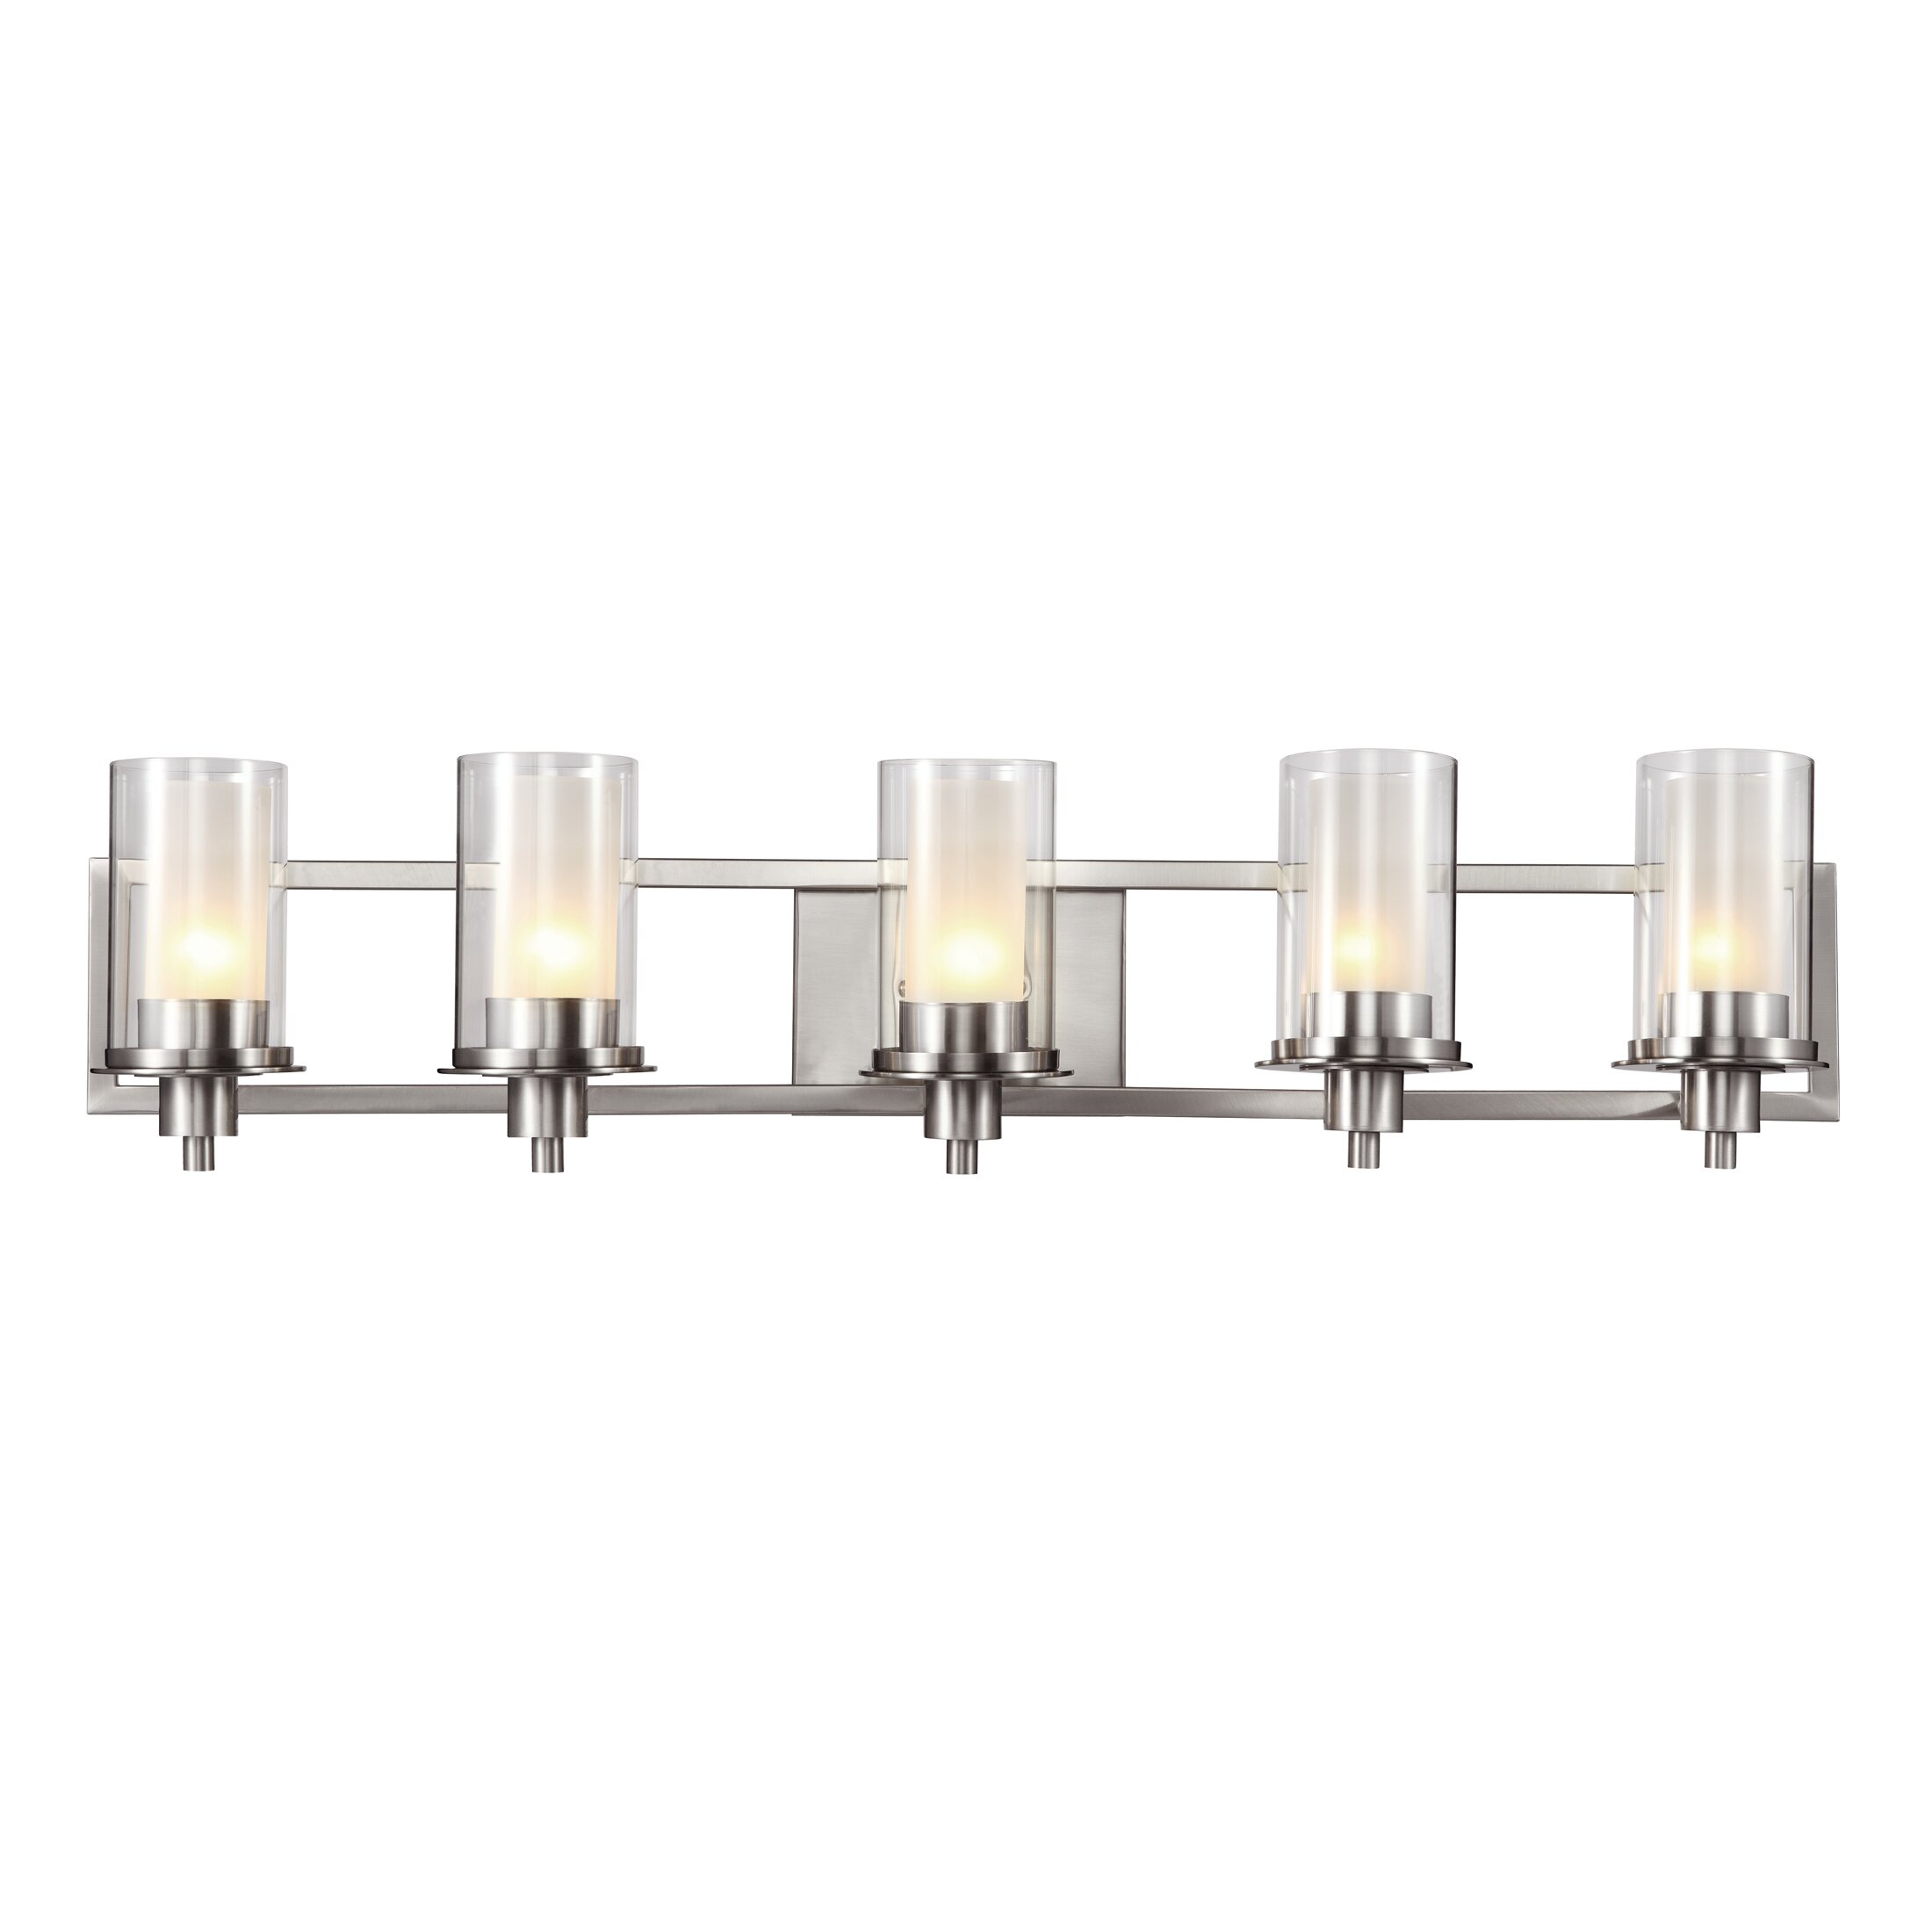 Transglobe Lighting 5 Light Vanity Light Reviews Wayfair